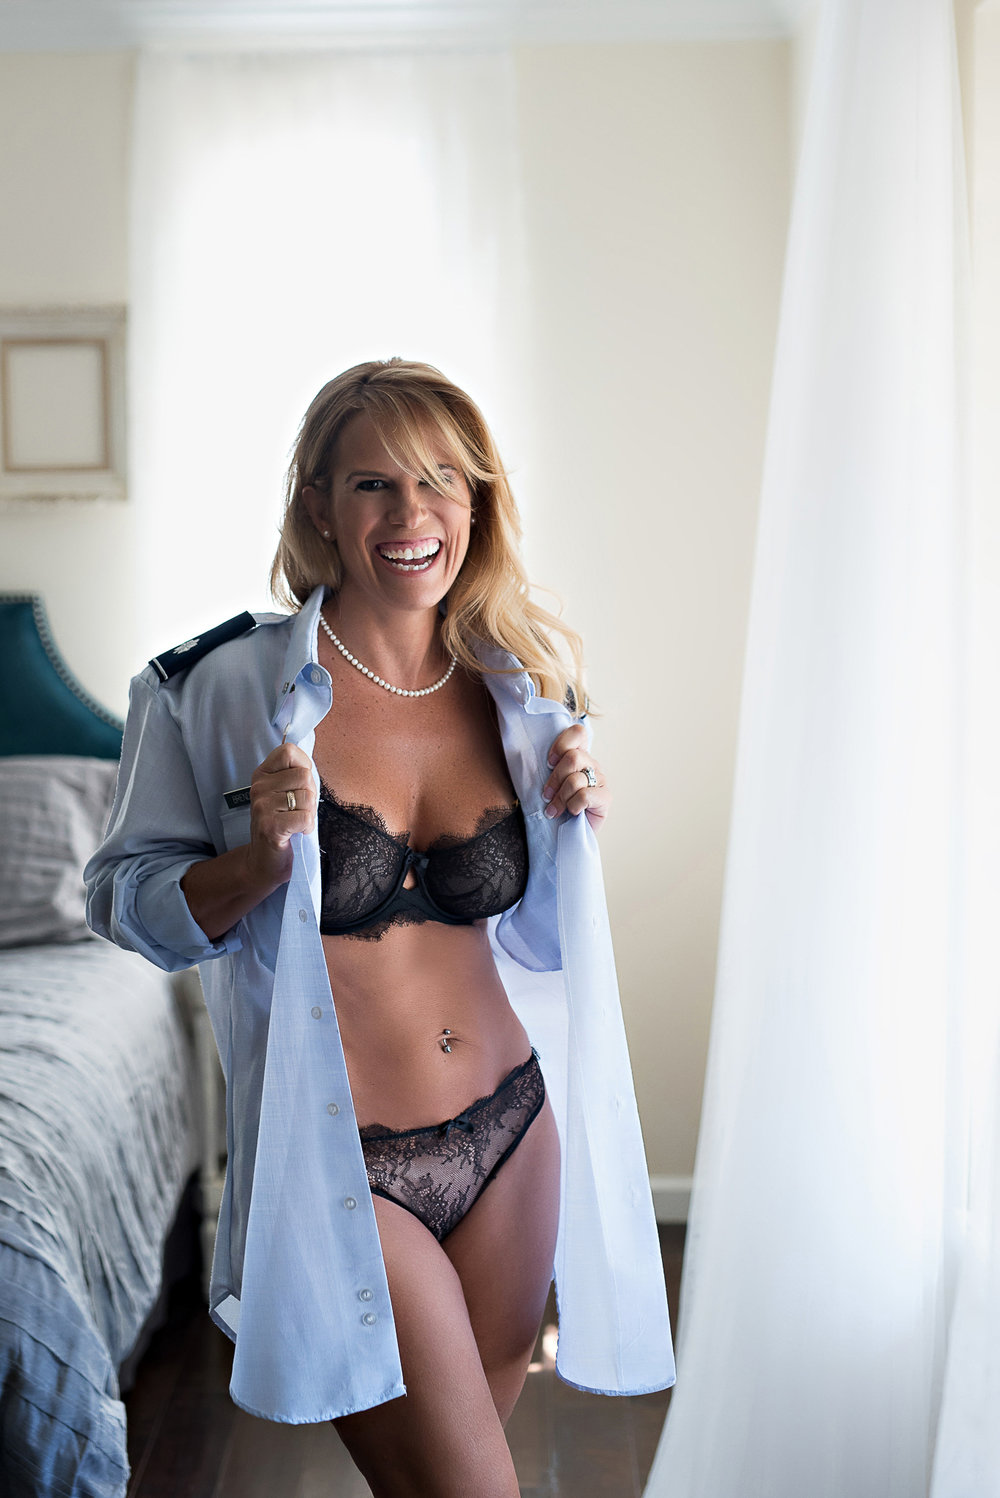 Denver boudoir photographer picture of  blonde woman wearing unbuttoned blue shirt and black lingerie